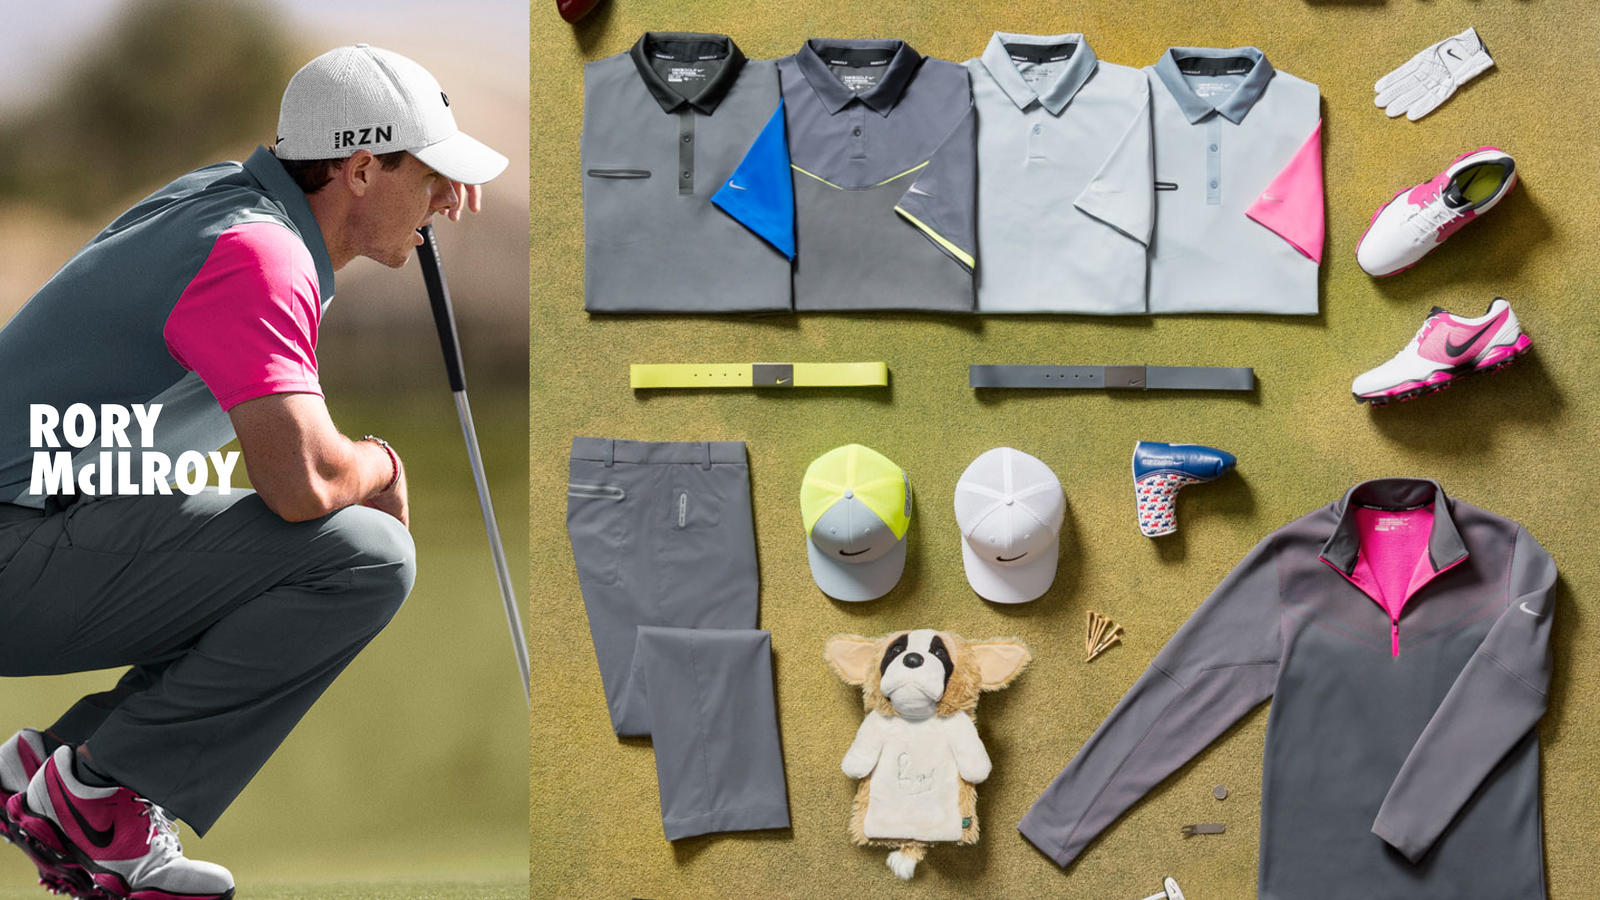 Rory McIlroy 2014 Open Championship